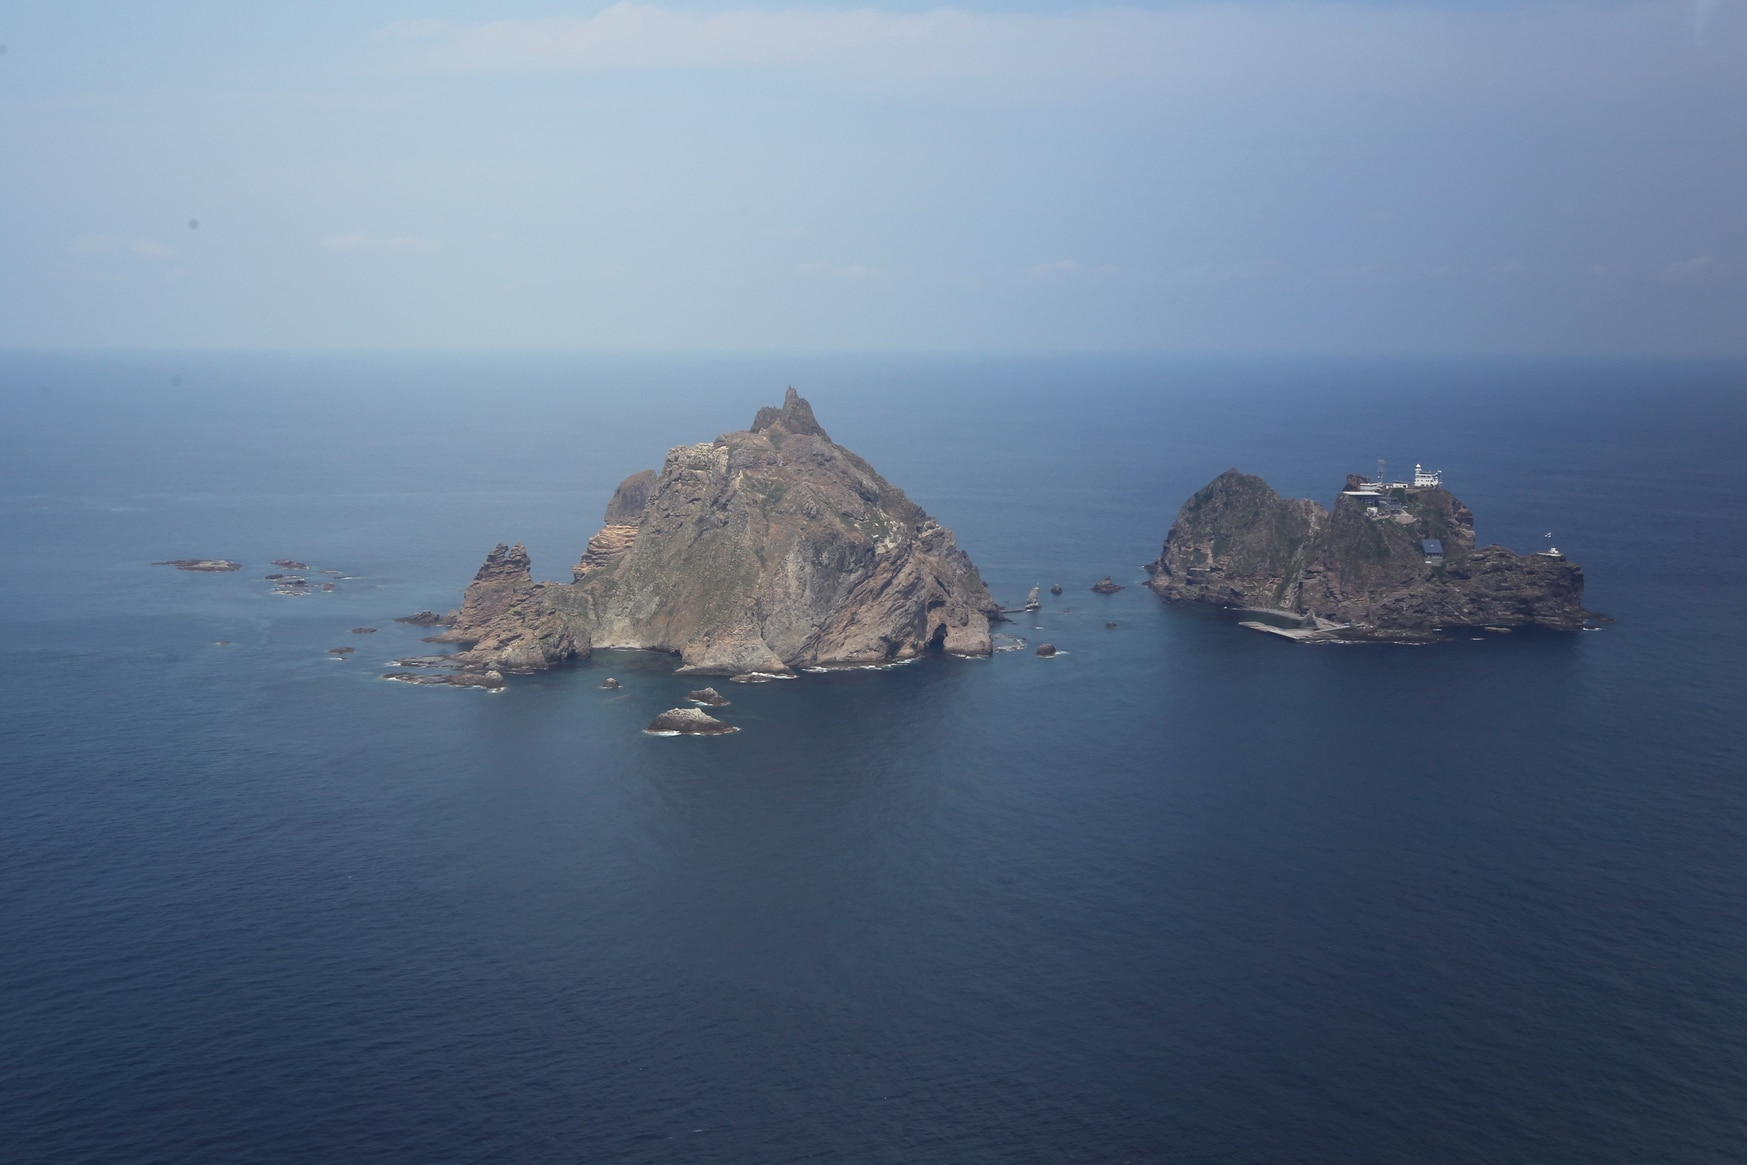 The disputer remote islands, known as Dokdo in South Korea and Takeshima in Japan, reside in the Sea of Japan (East Sea). (Dong-a Ilbo/AFP via Getty Images)